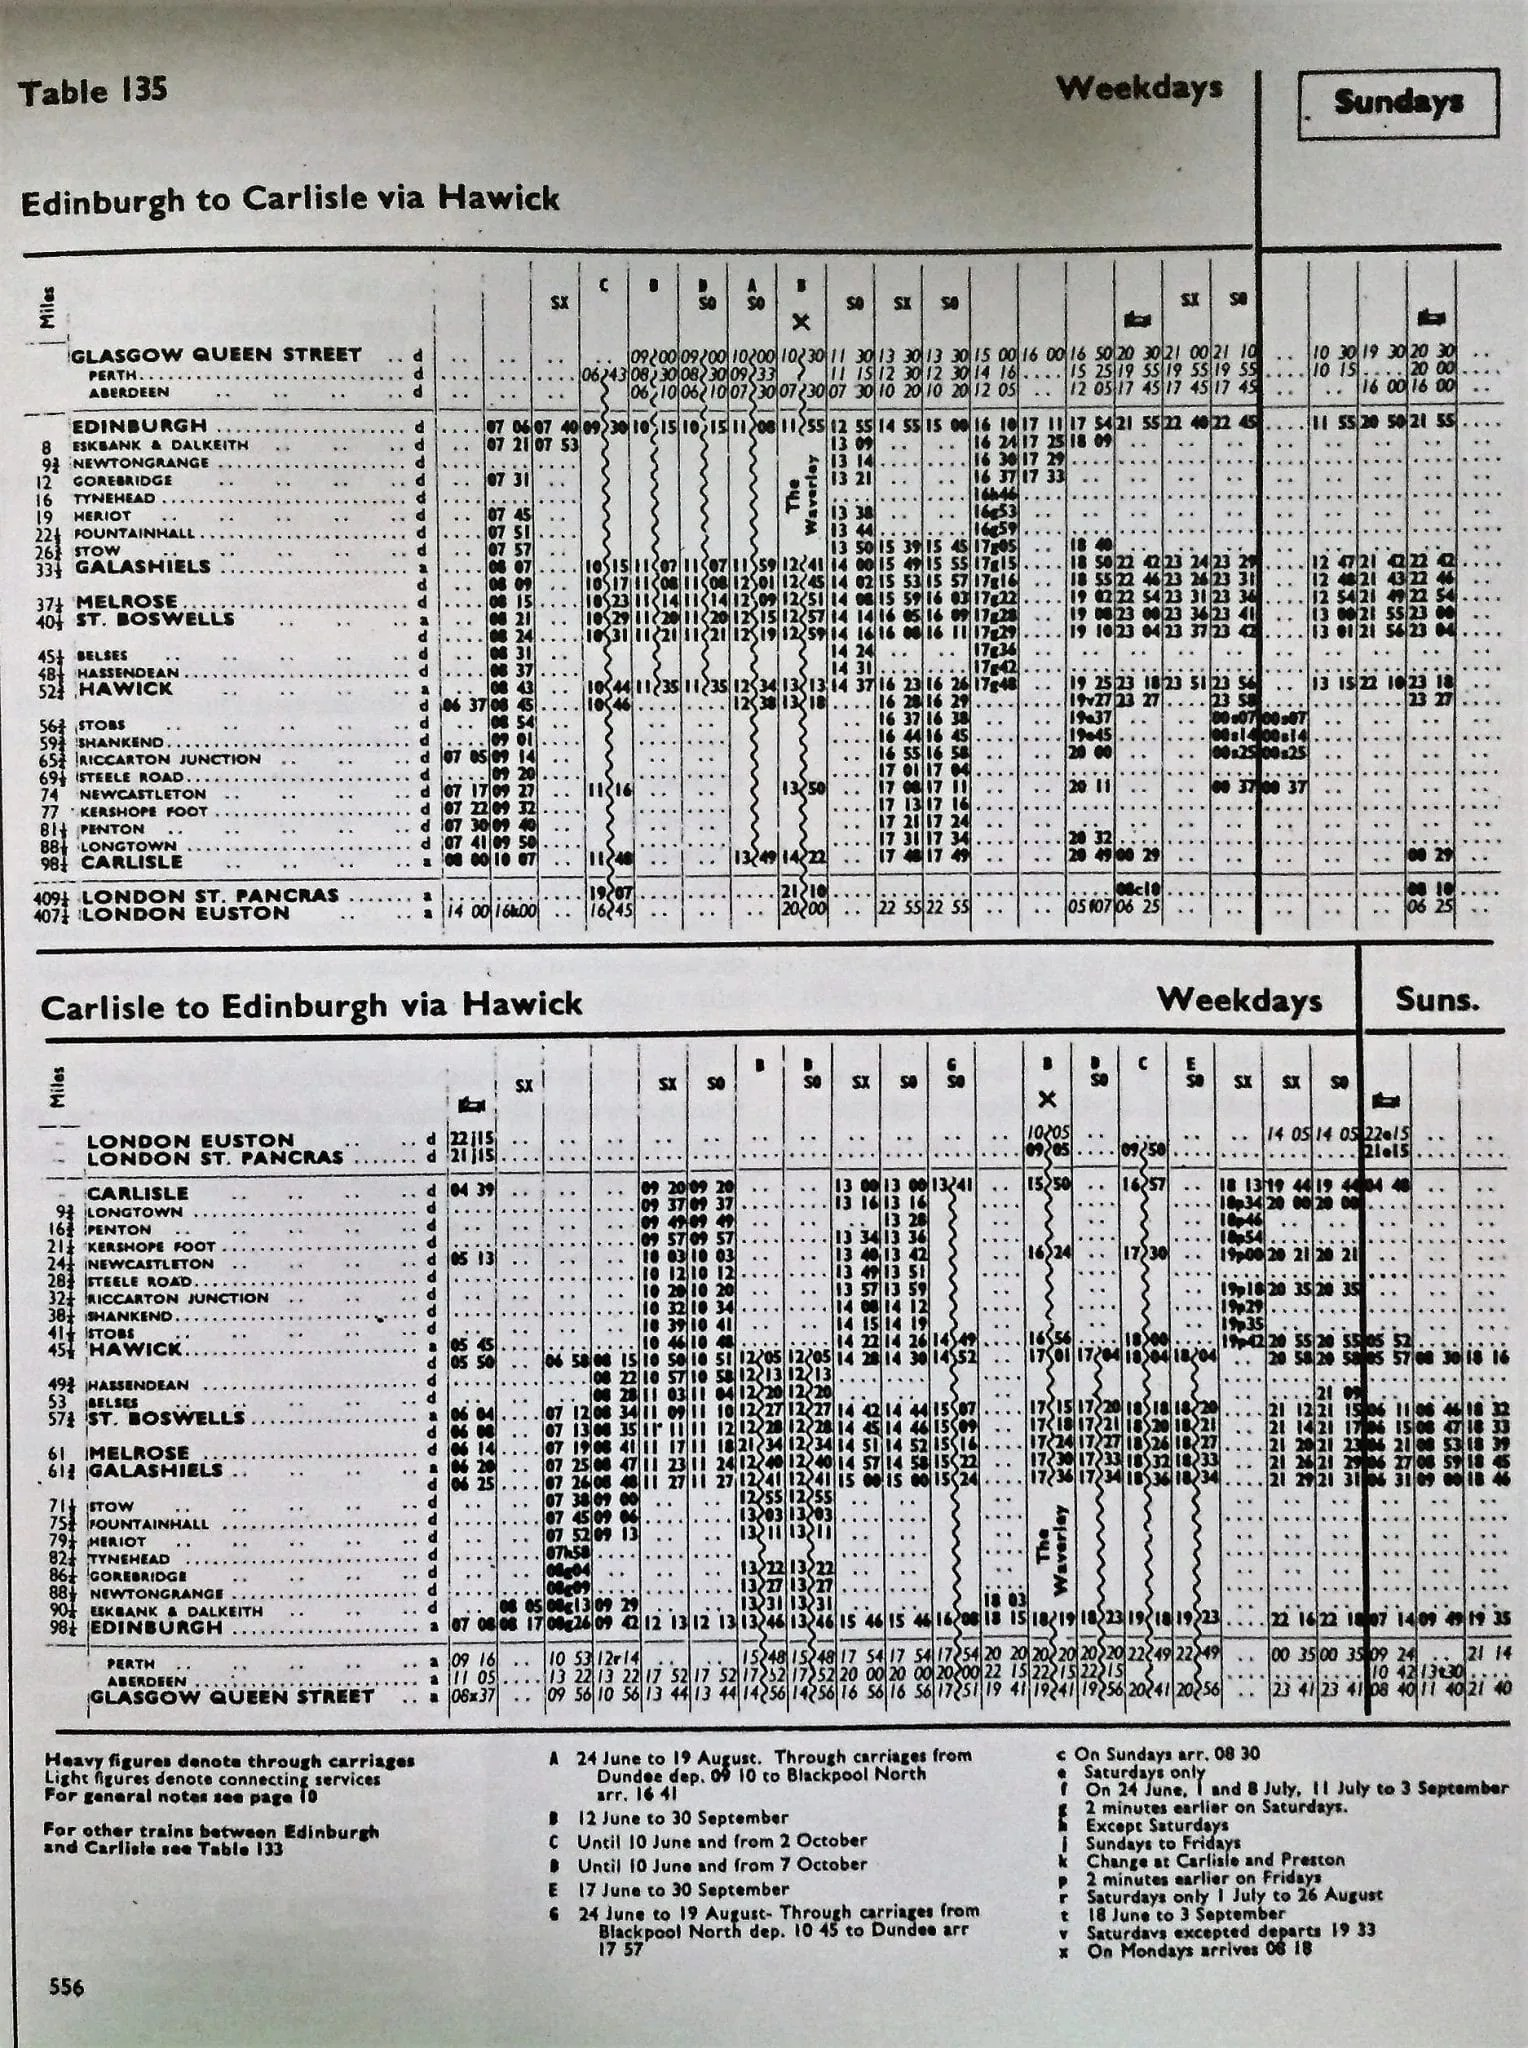 Waverley Route timetable - 1968